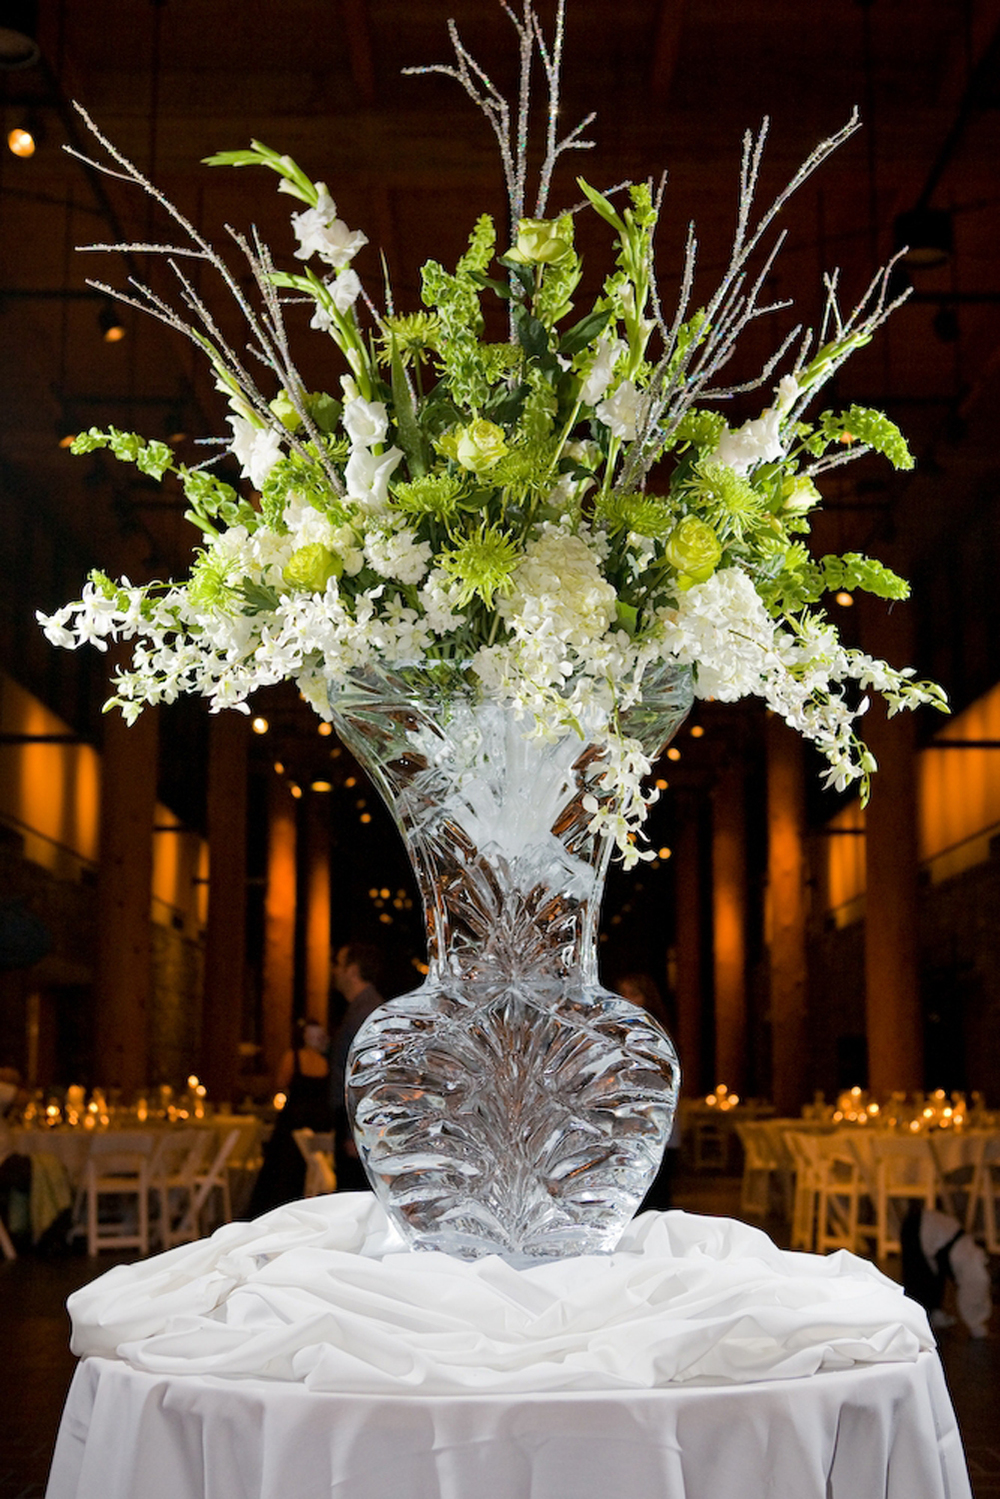 Winter wedding Tableware Centerpiece